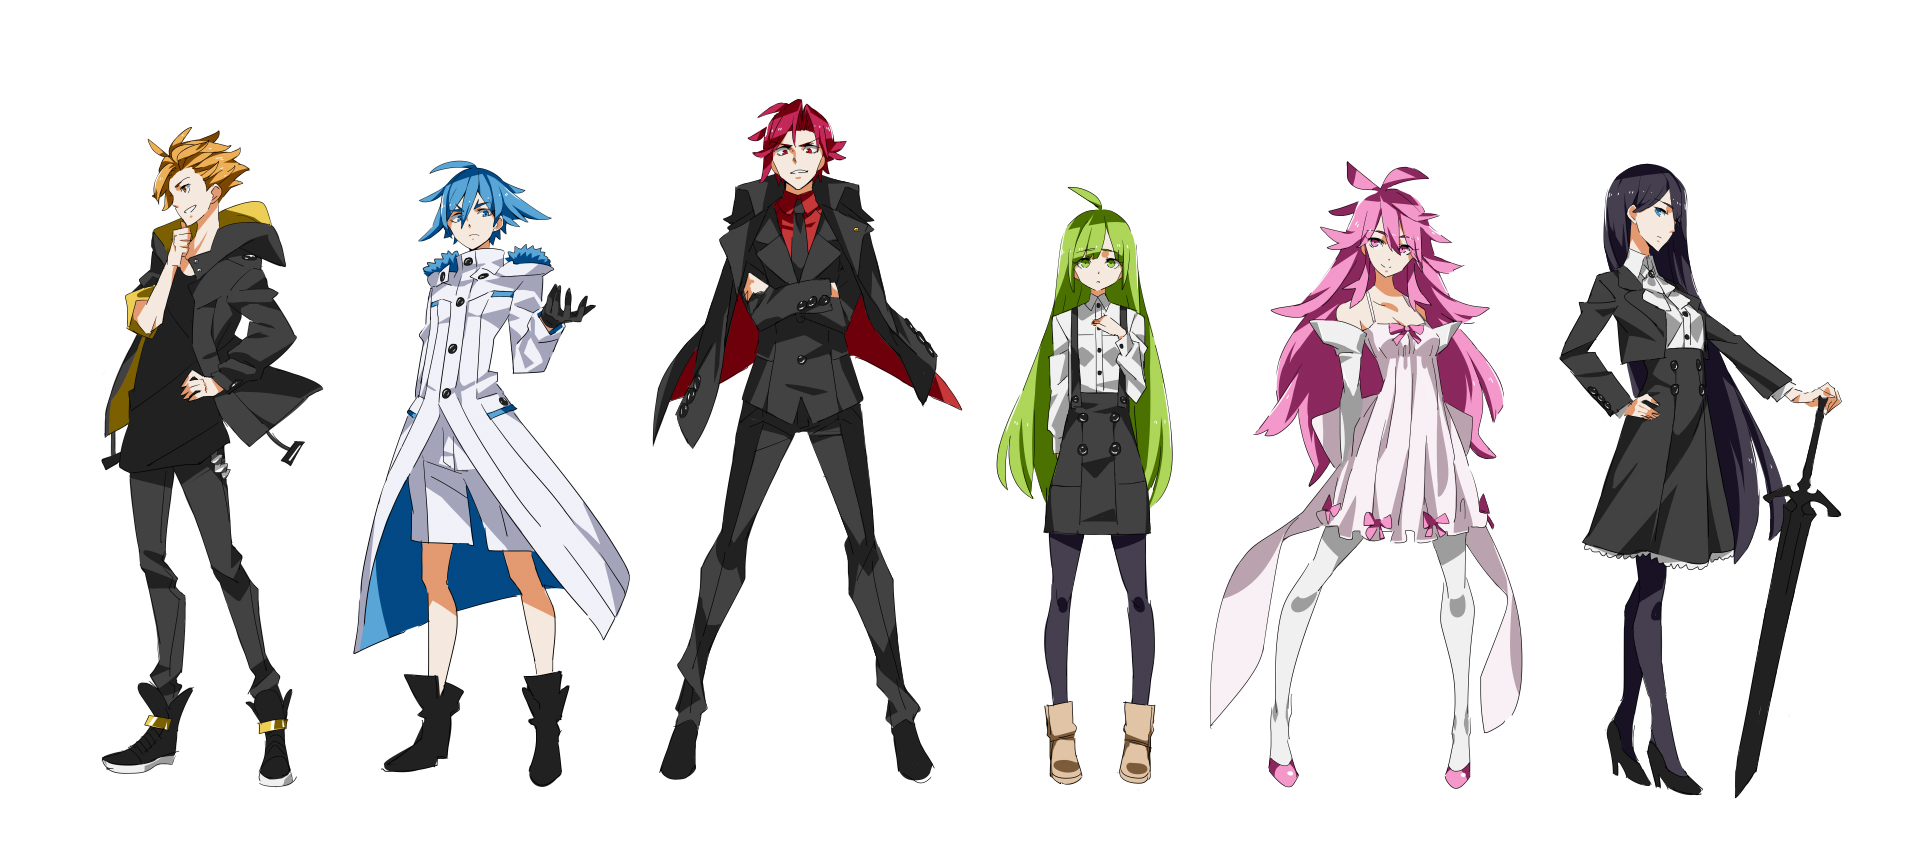 Character Design Artist Resource : Mage project character designs wip by jakuu on deviantart